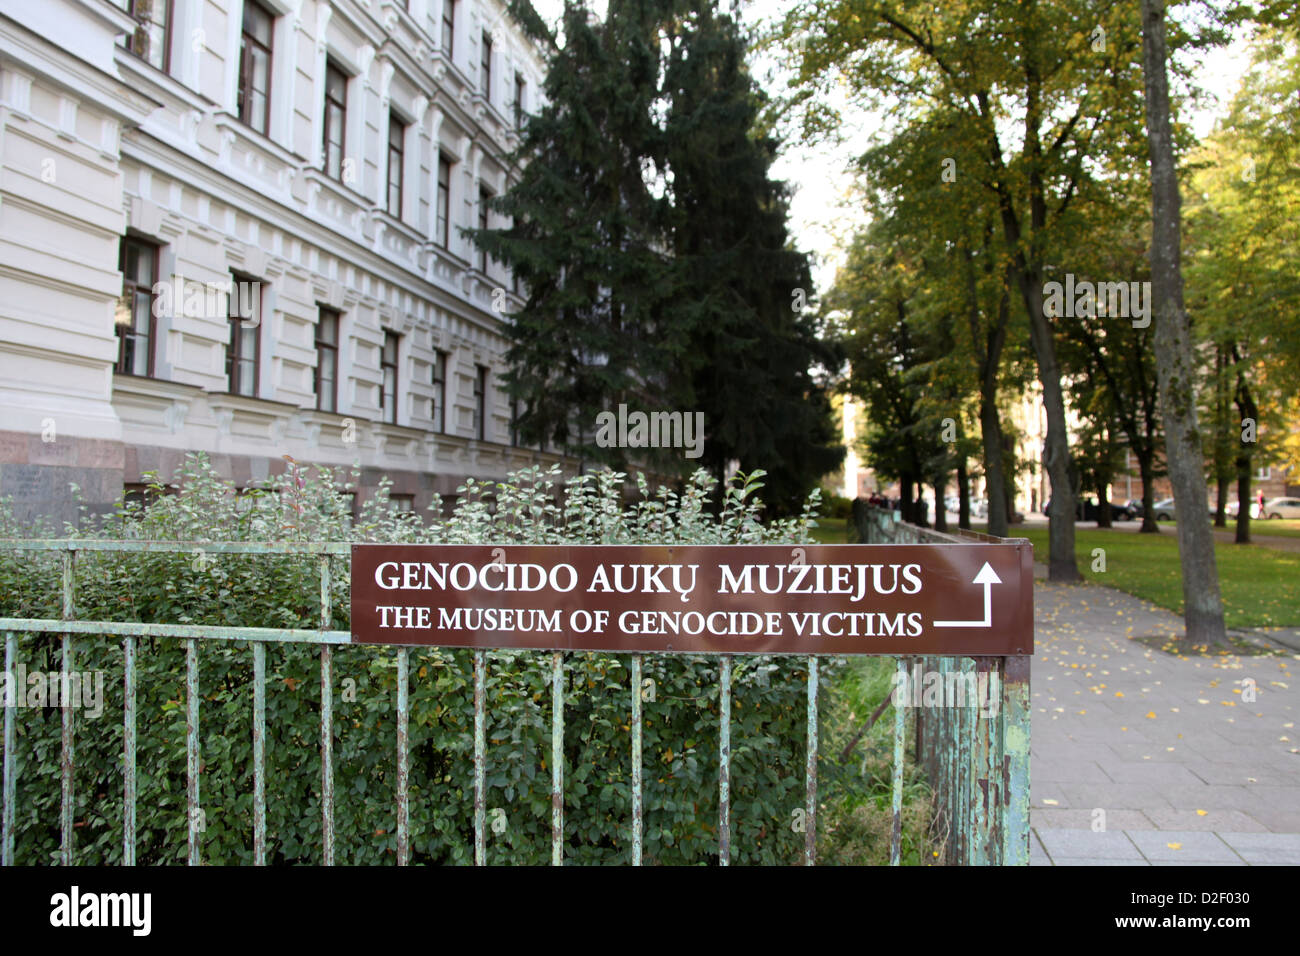 Exterior of the Museum of Genocide in Vilnius - Stock Image